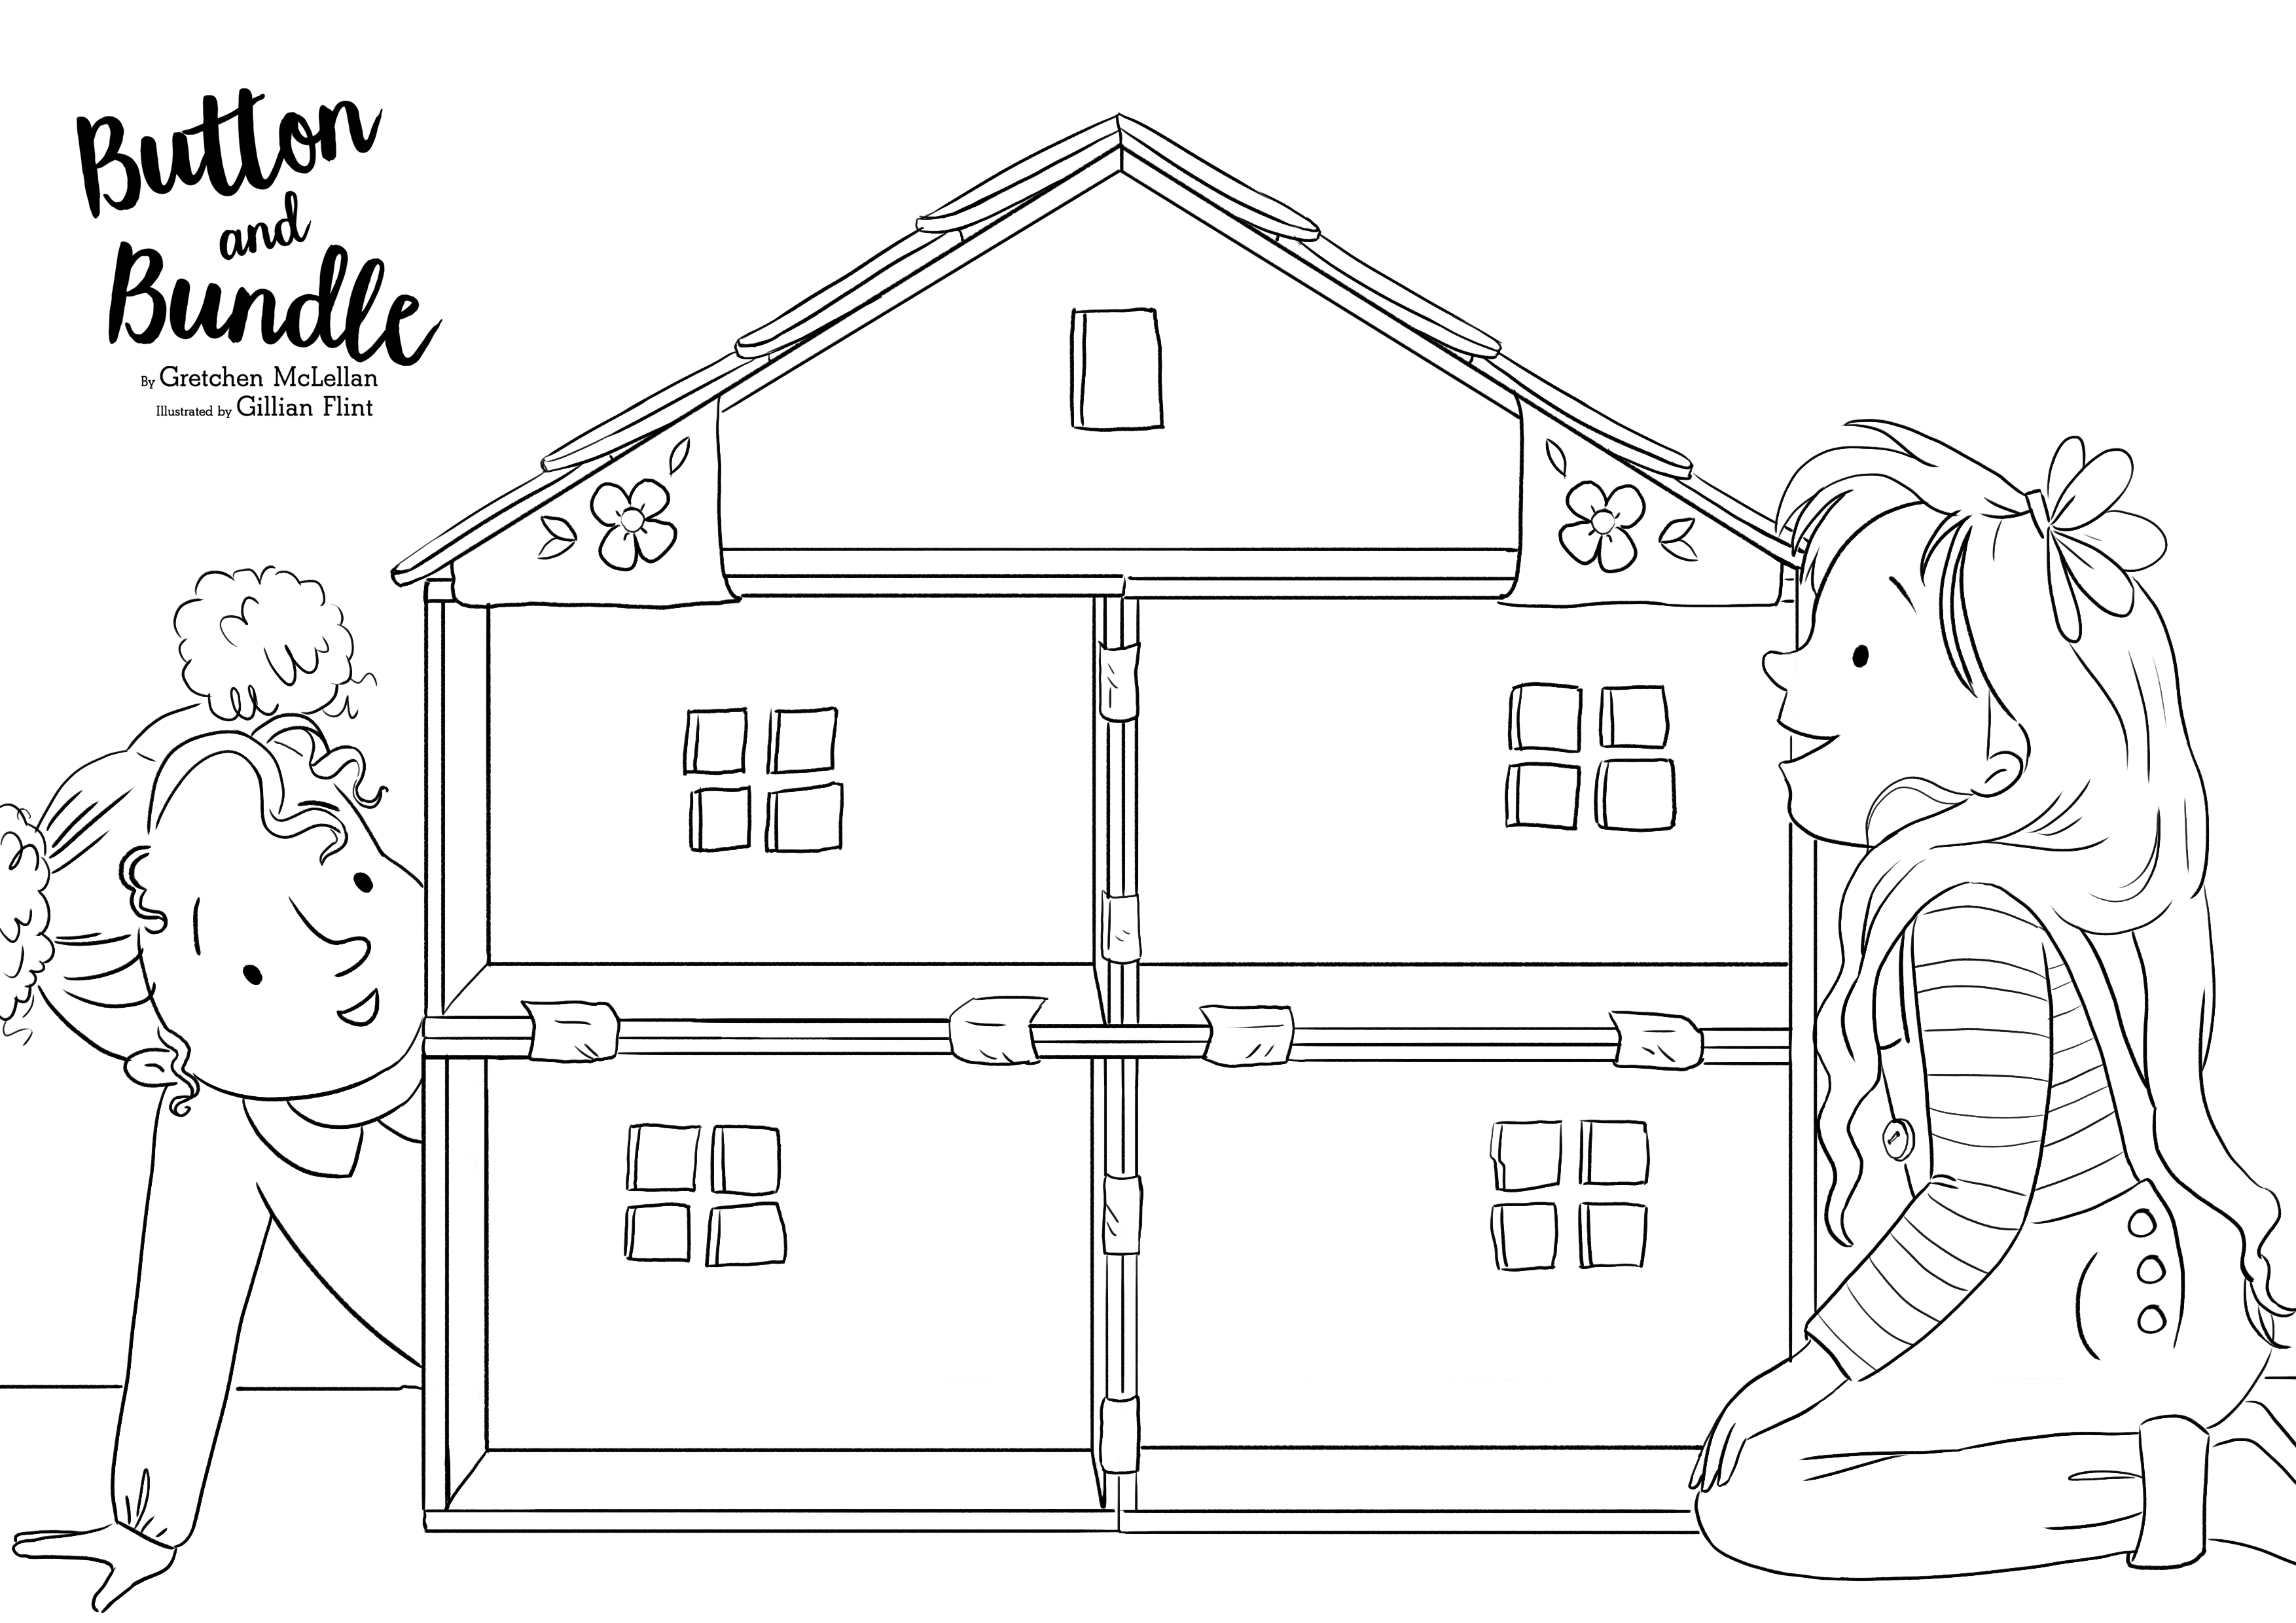 Button and Bundle House colouring sheet.